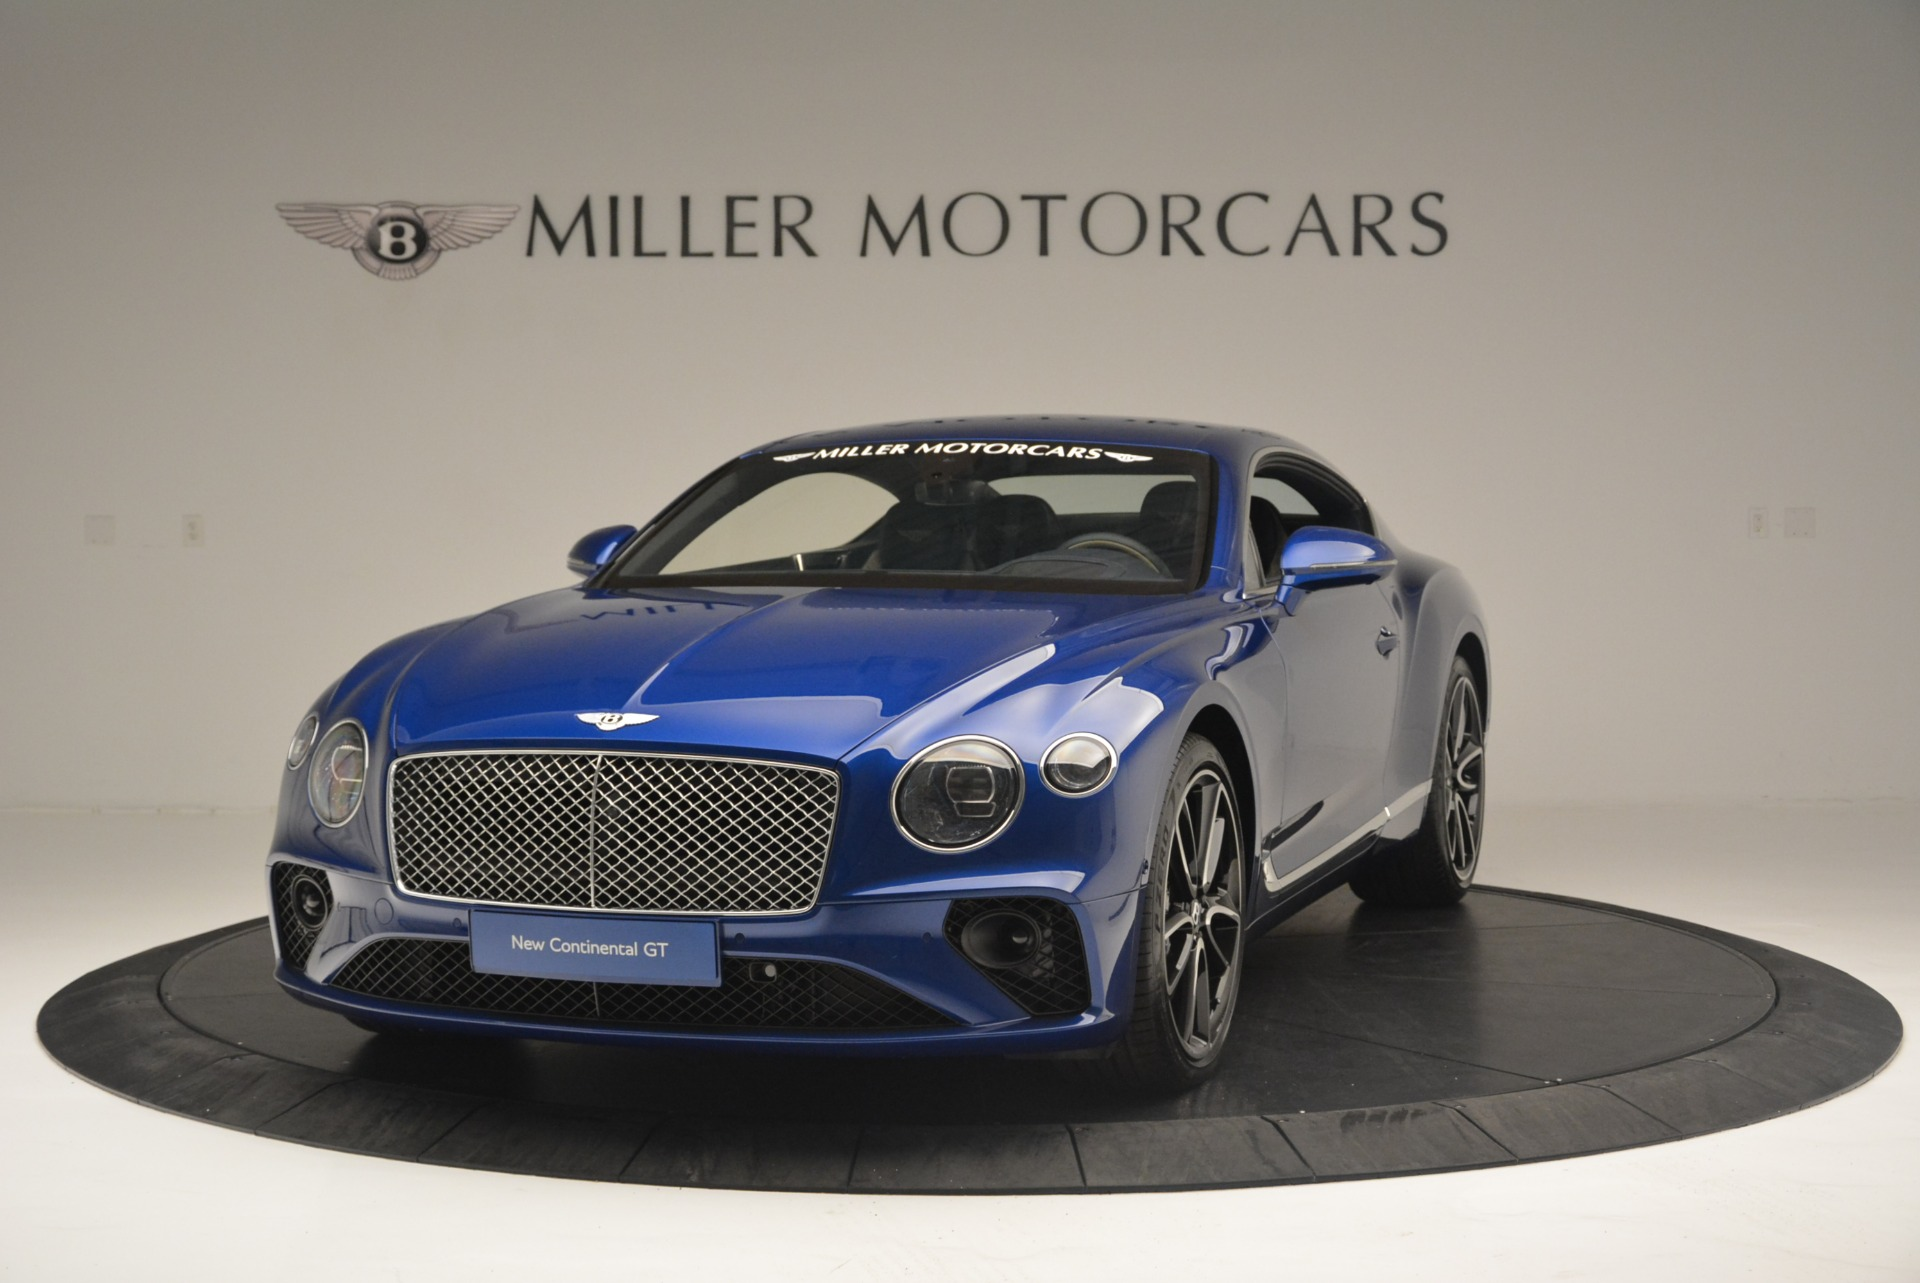 2020 bentley continental gt stock # 20gt for sale near greenwich, ct